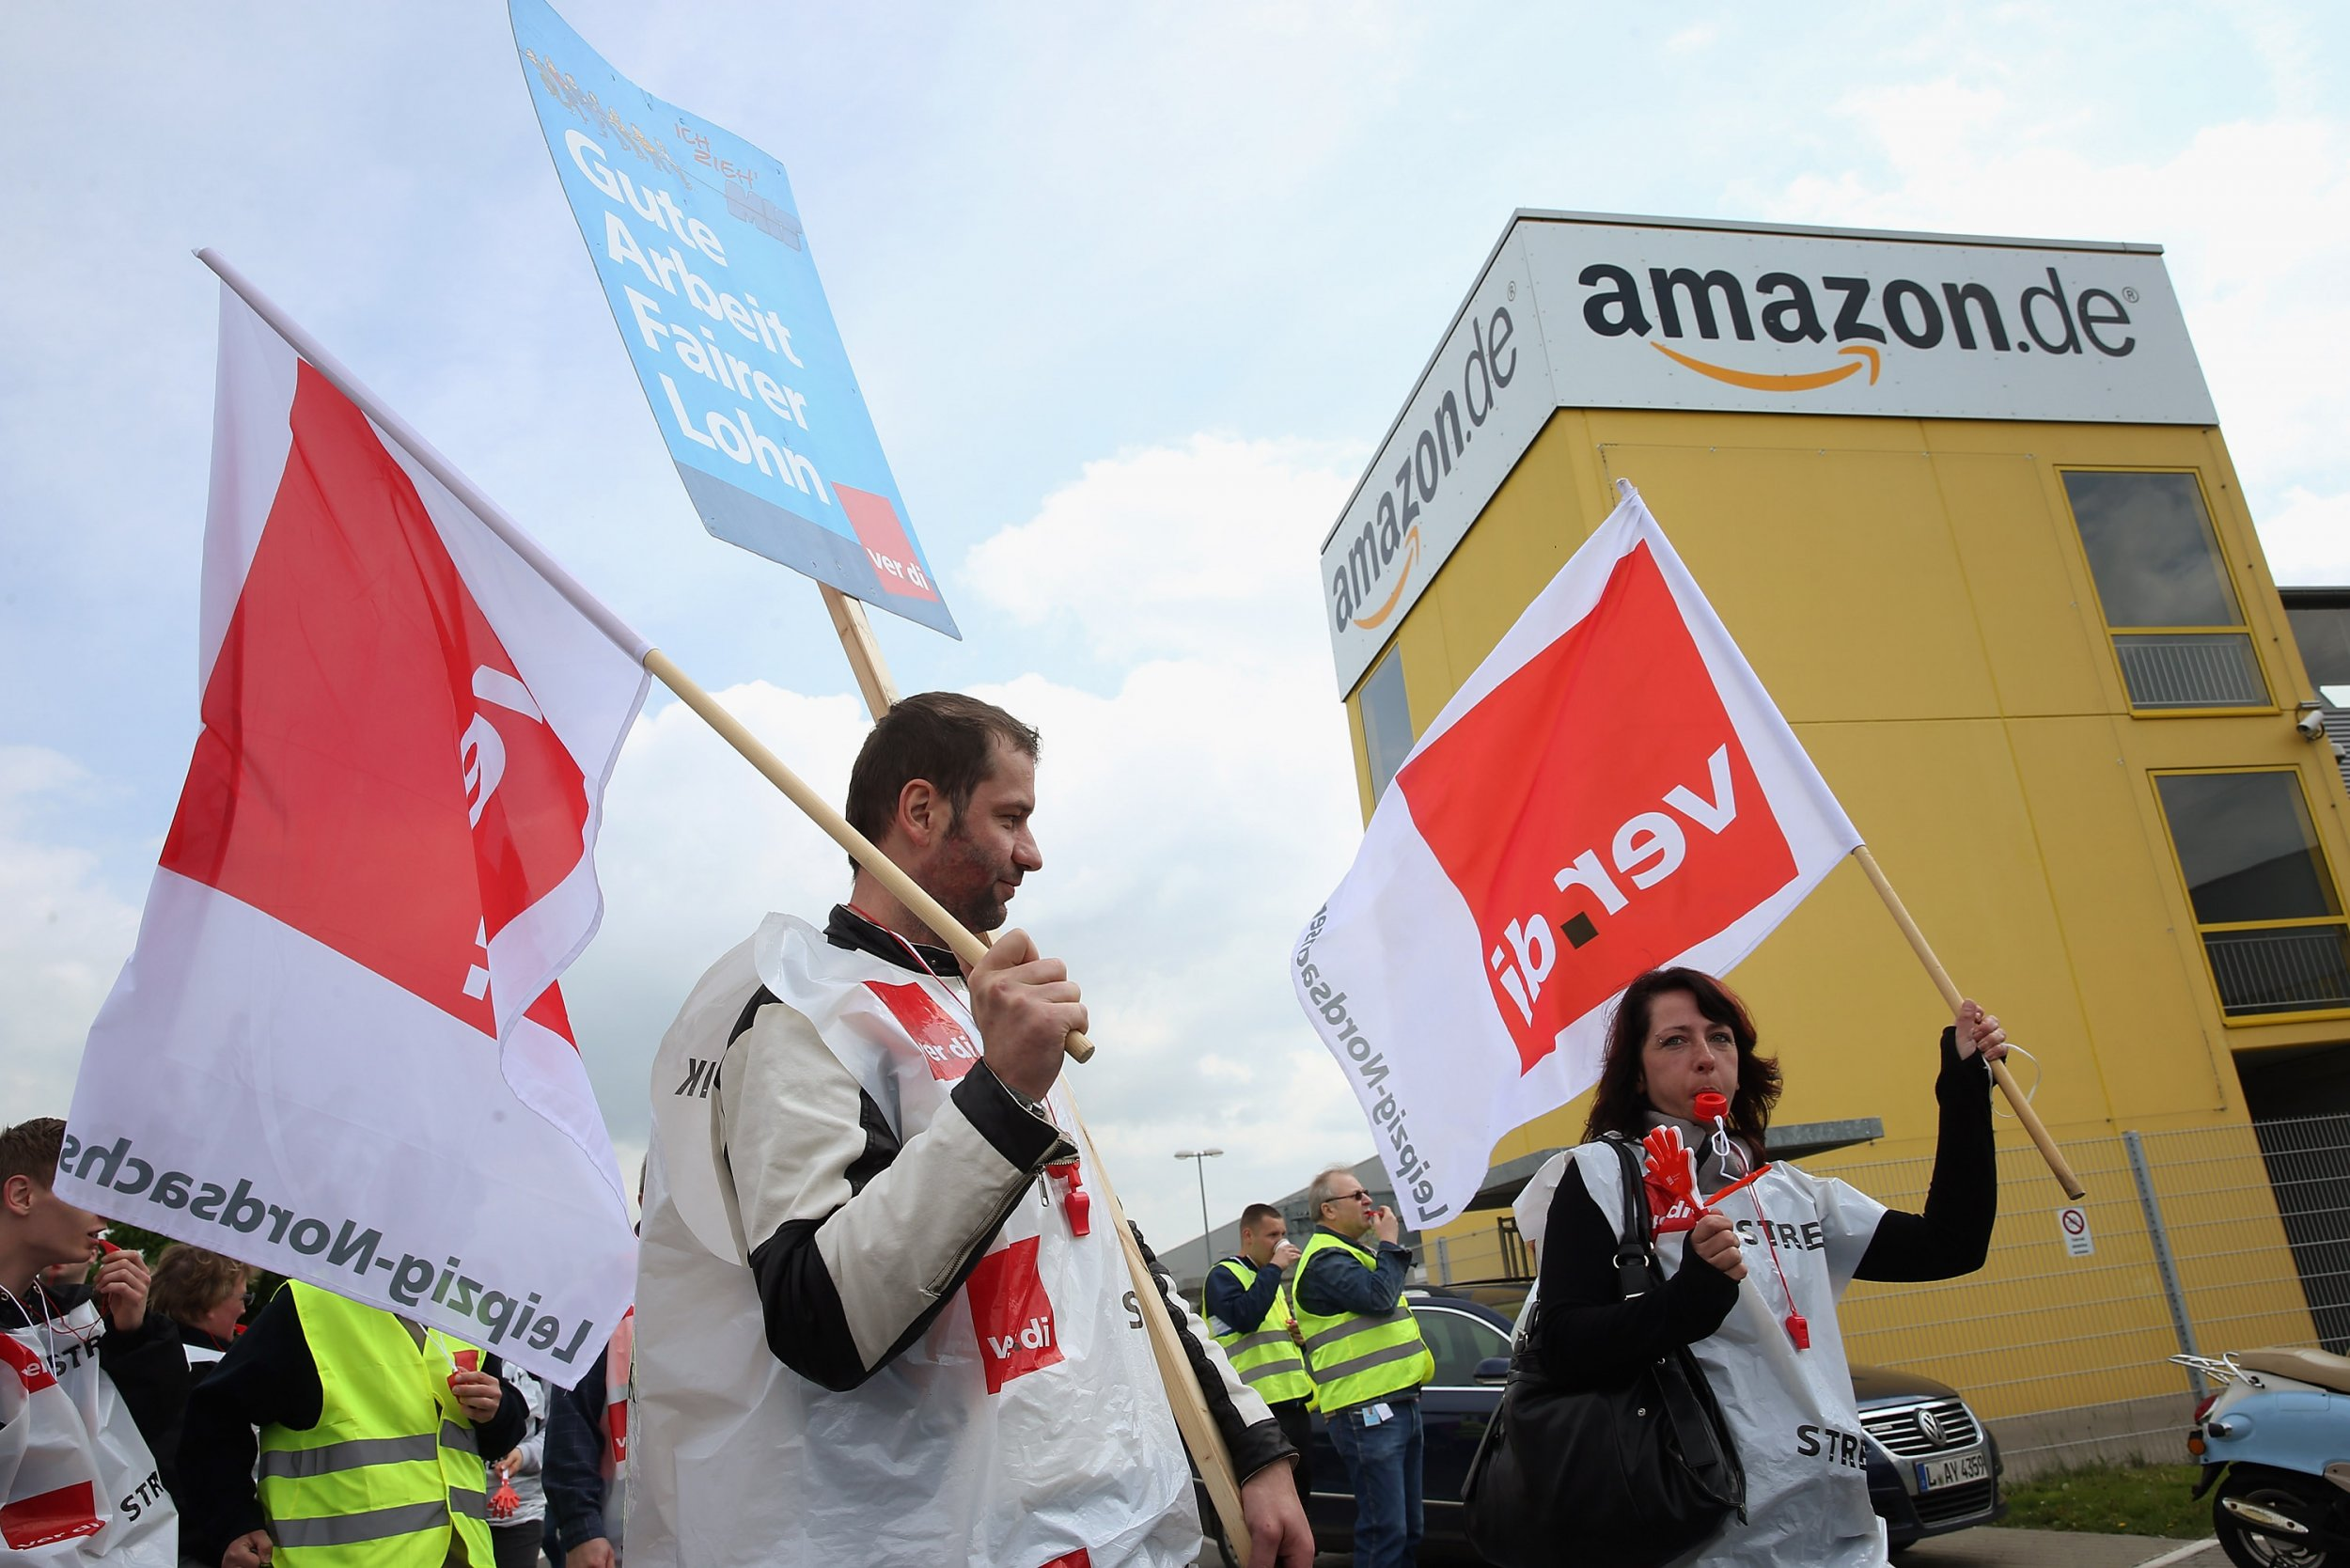 black friday amazon workers strike for higher wages better conditions. Black Bedroom Furniture Sets. Home Design Ideas